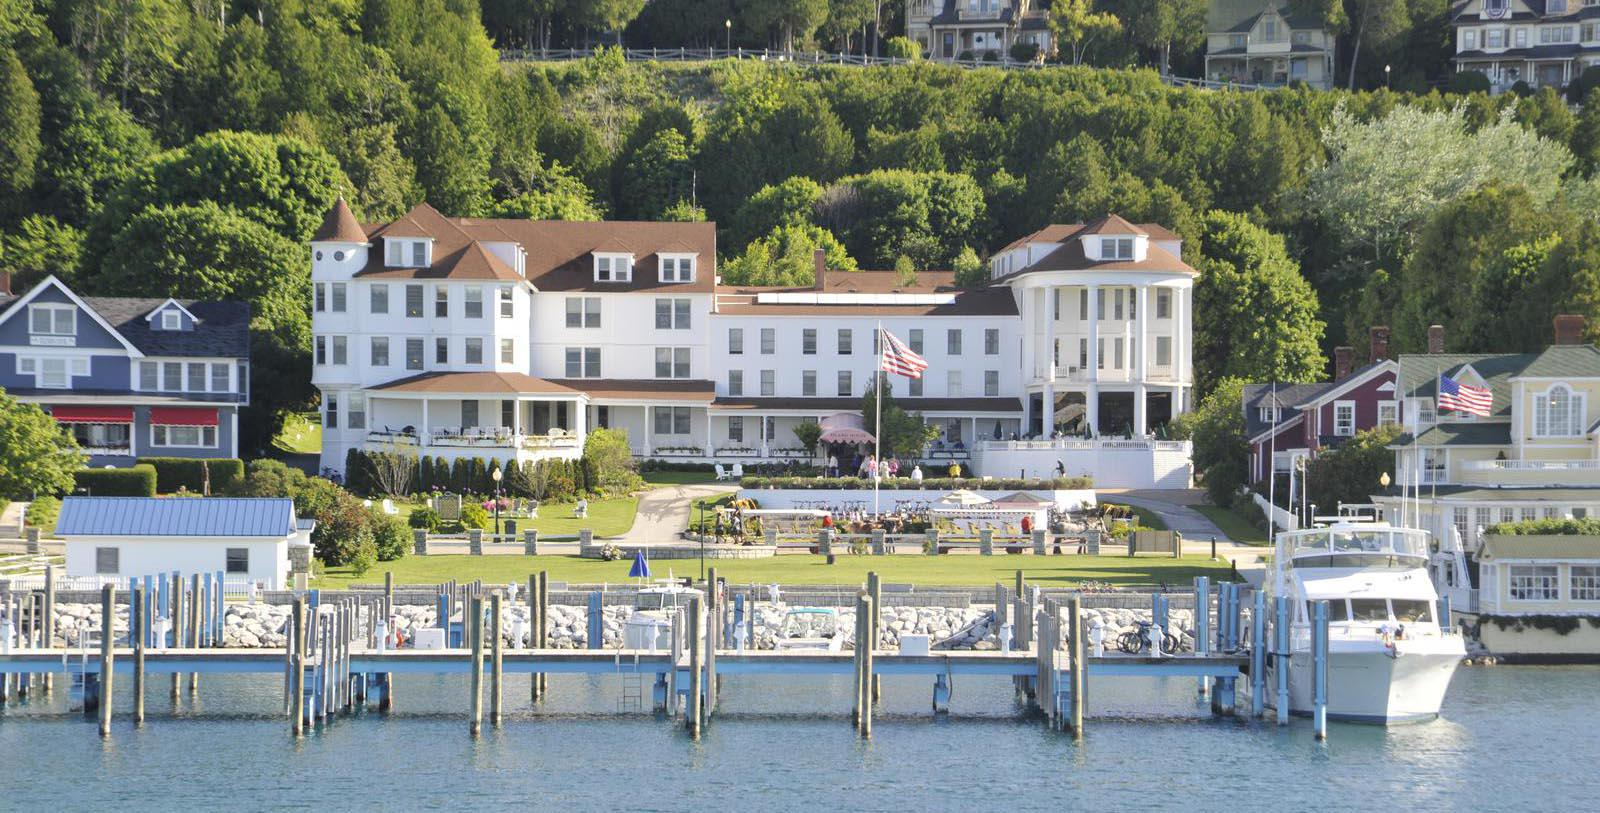 Image of Exterior and Marina, Island House Hotel in Mackinac Island, Michigan, 1852Member of Historic Hotels of America, Special Offers, Discounted Rates, Families, Romantic Escape, Honeymoons, Anniversaries, Reunions